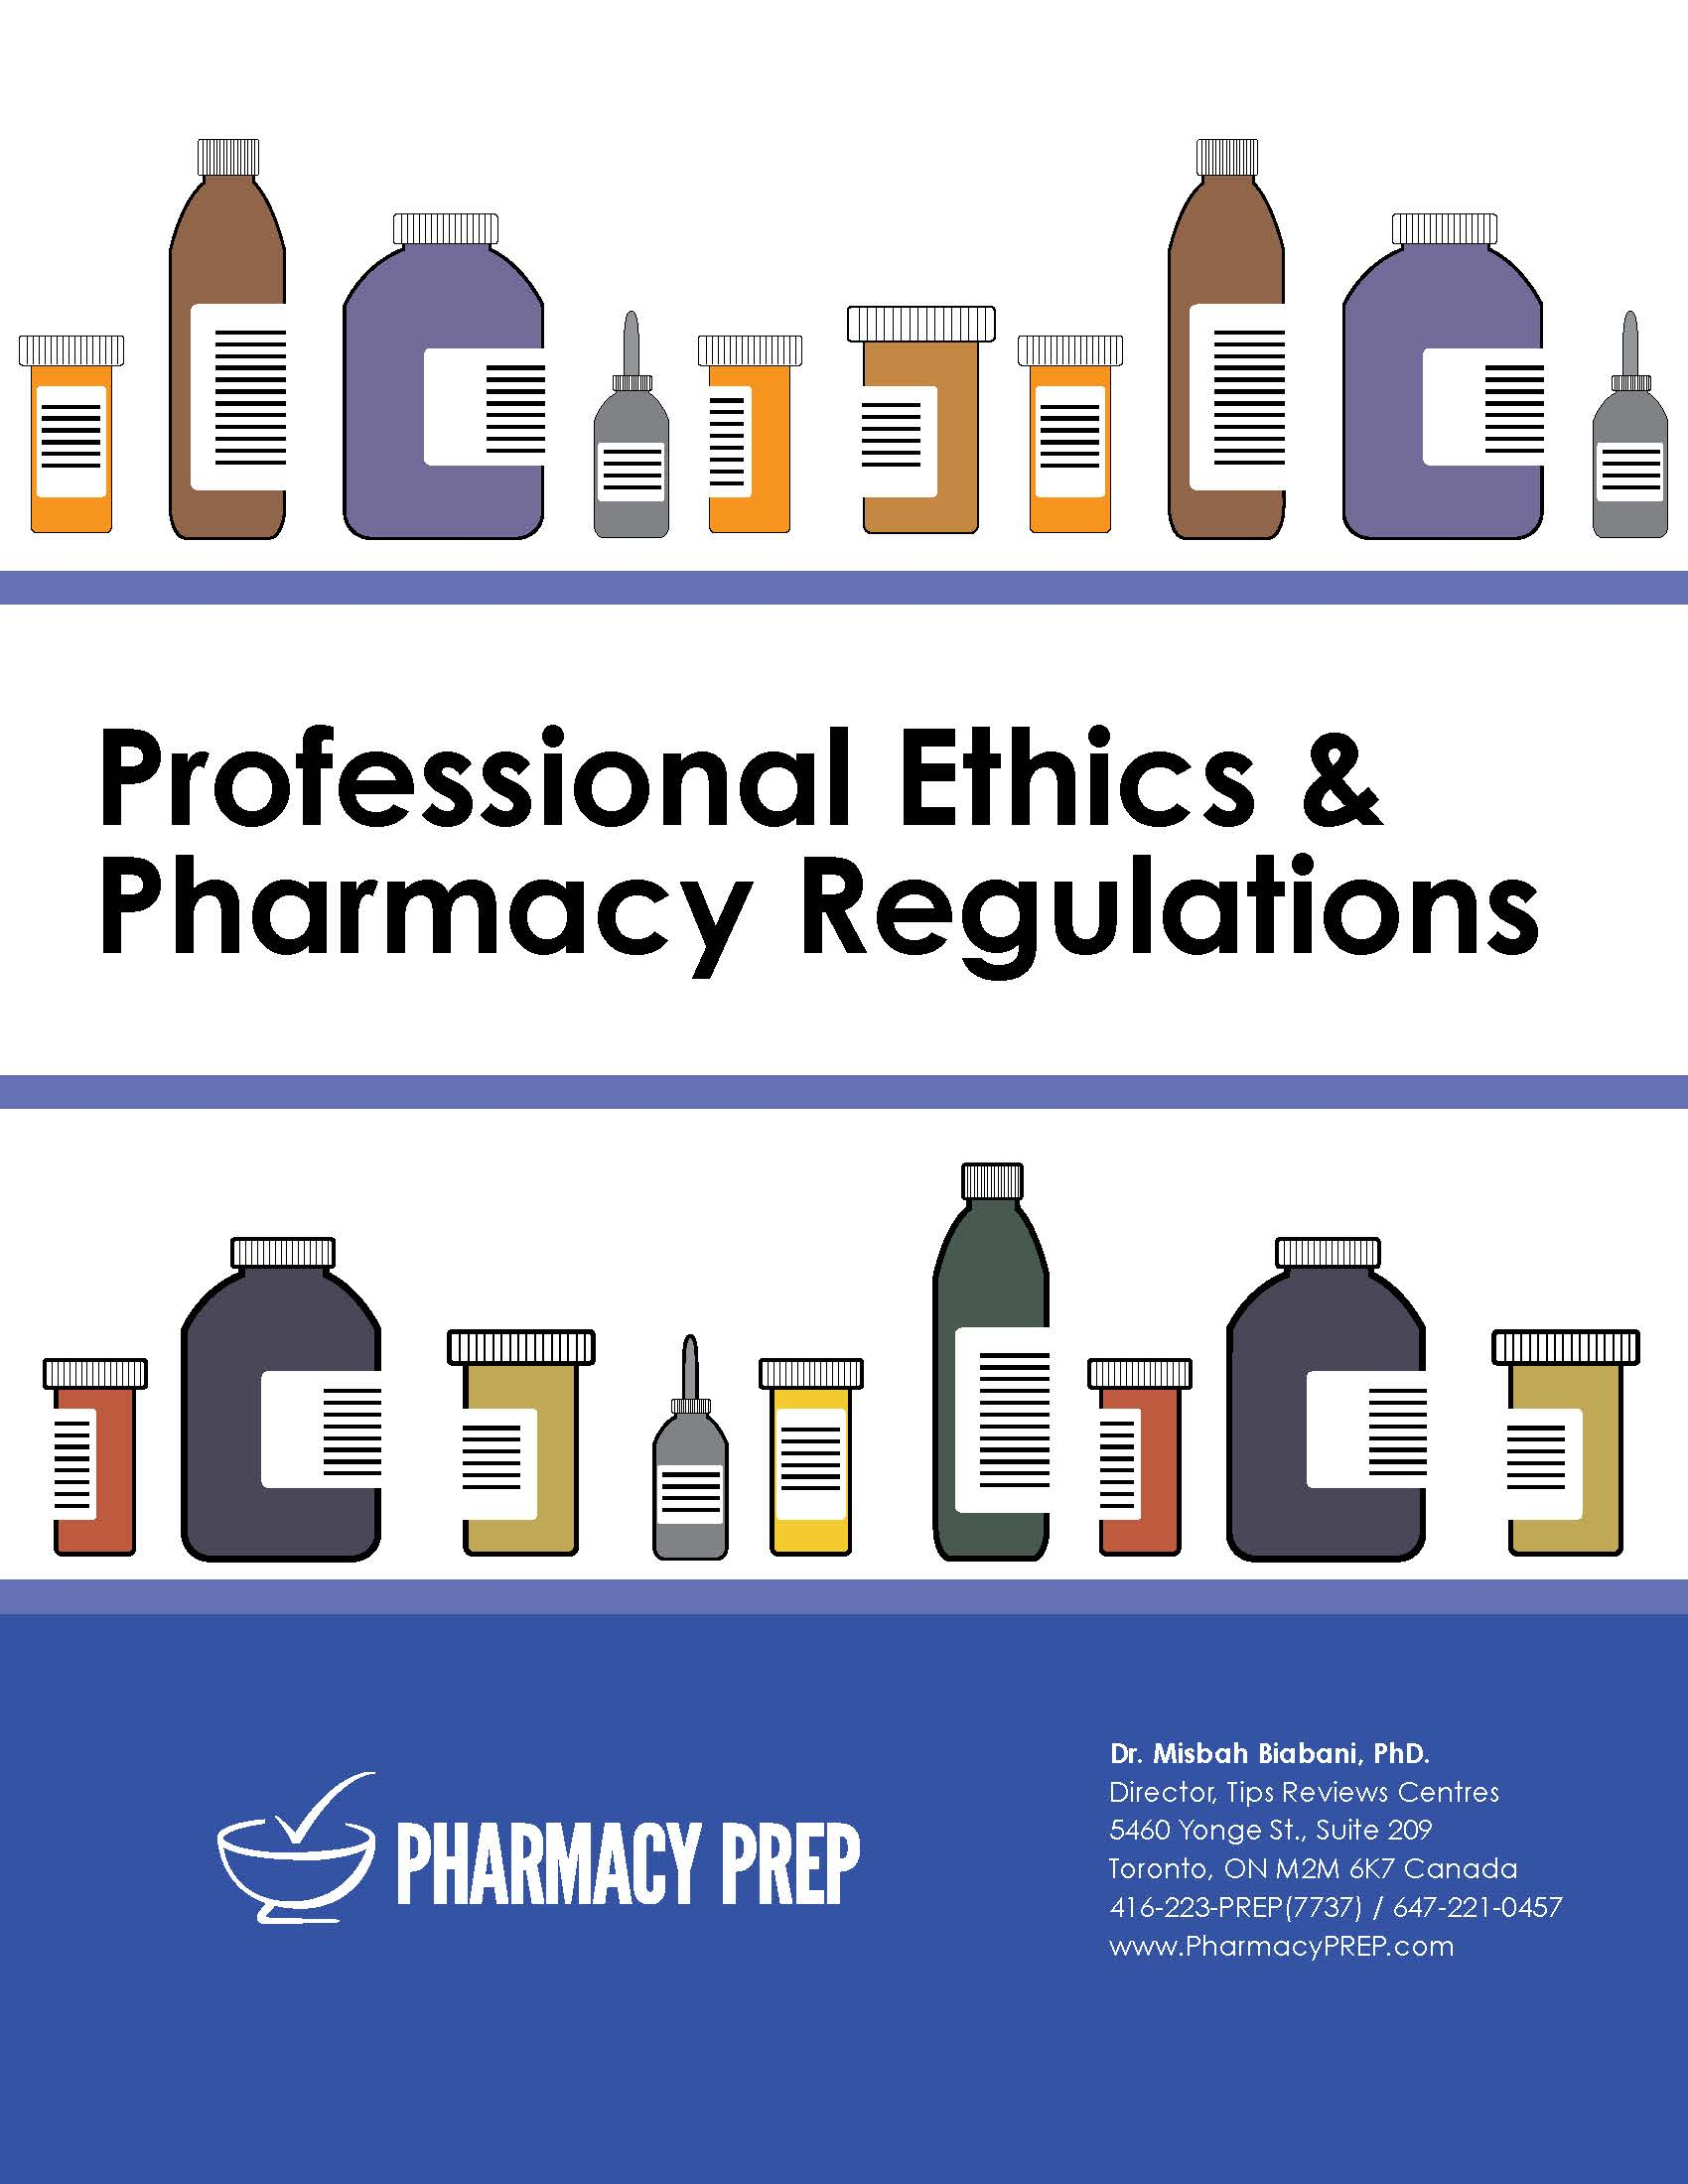 Pharmacy Prep Technician Qualifying Exam Review, Professional Ethics & Pharmacy Regulations - Misbah Biabani, Ph.D.